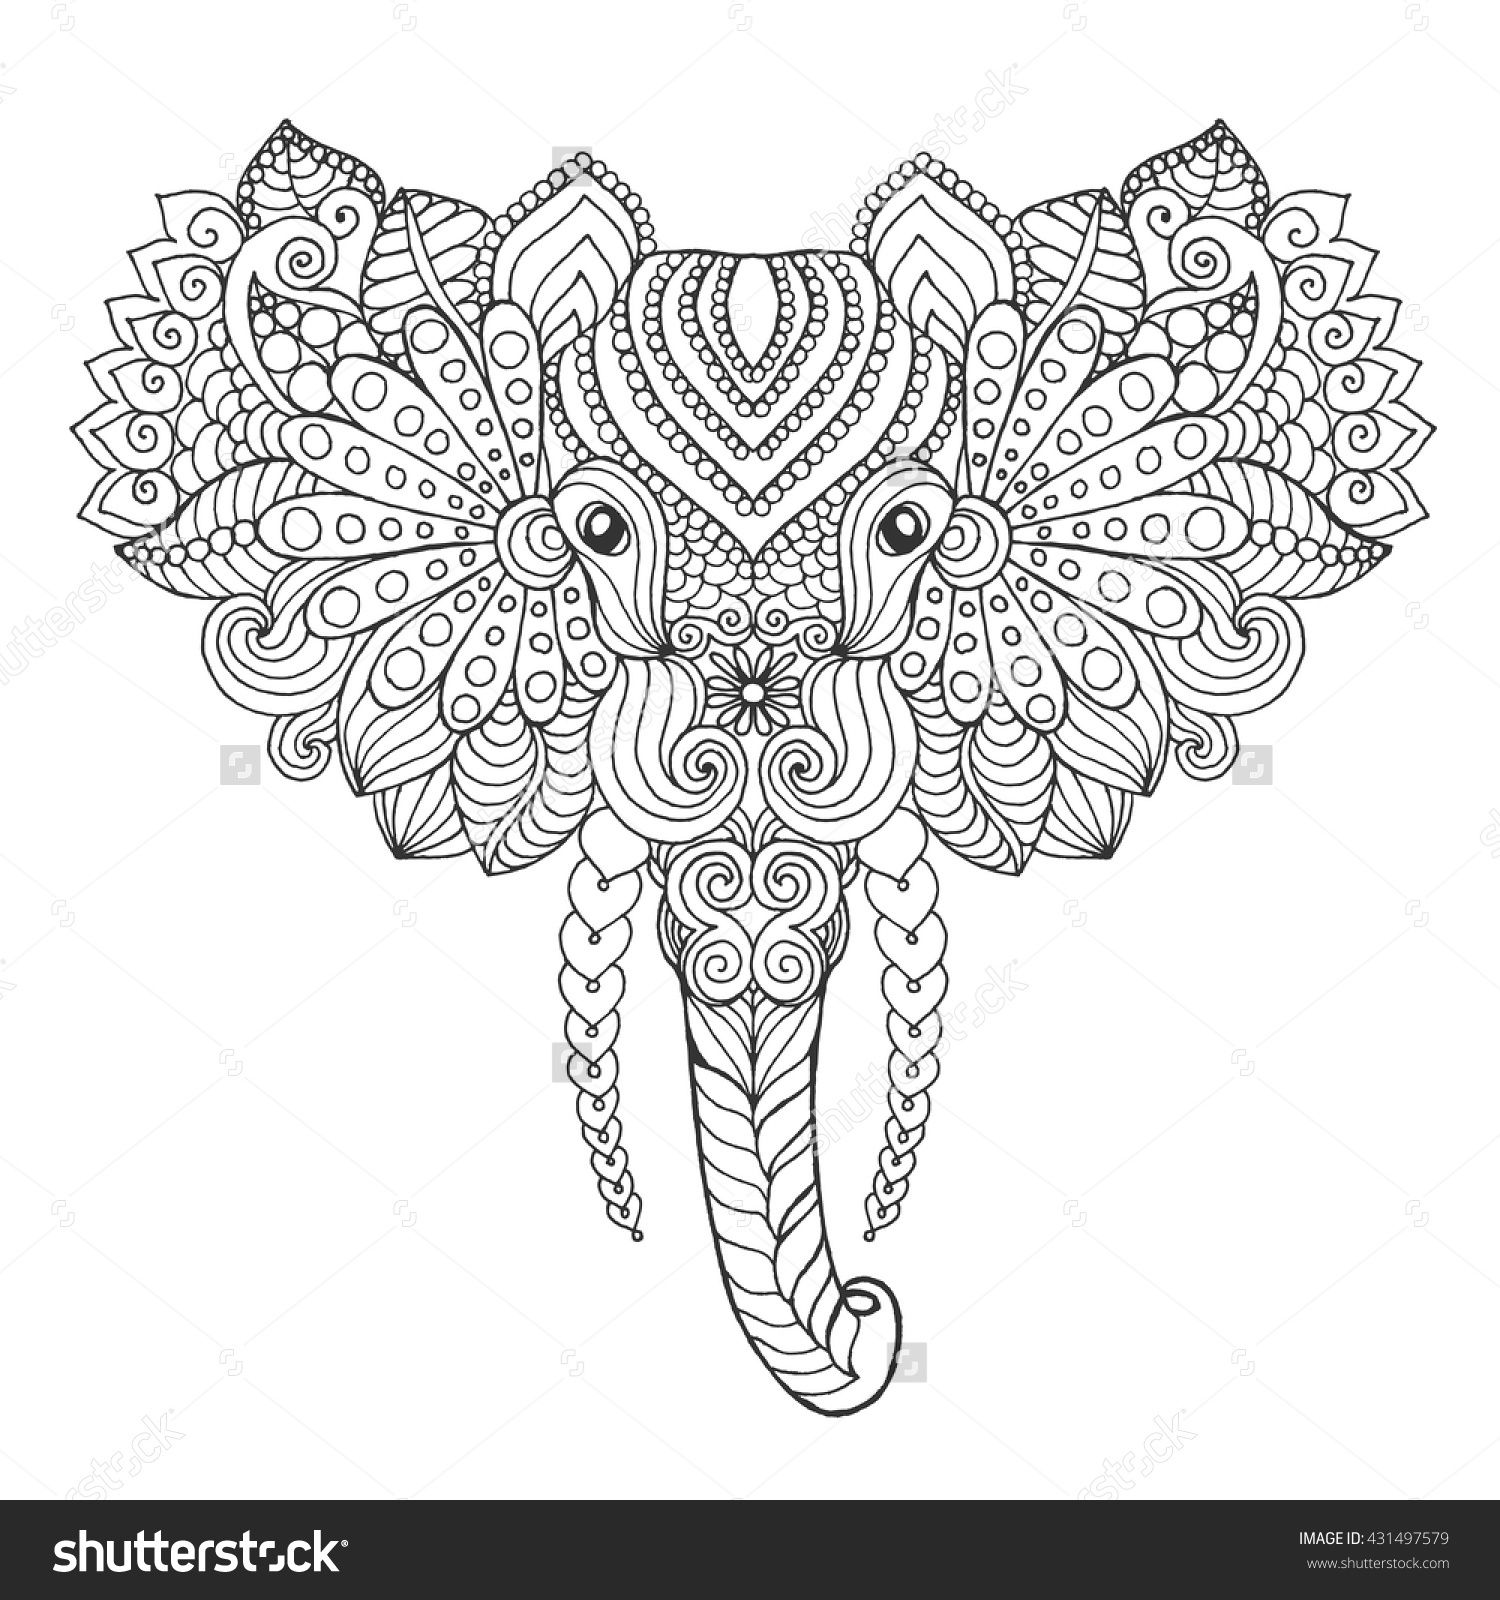 Elephant Head Adult Antistress Coloring Page Black White Hand Drawn Doodle Animal Ethnic